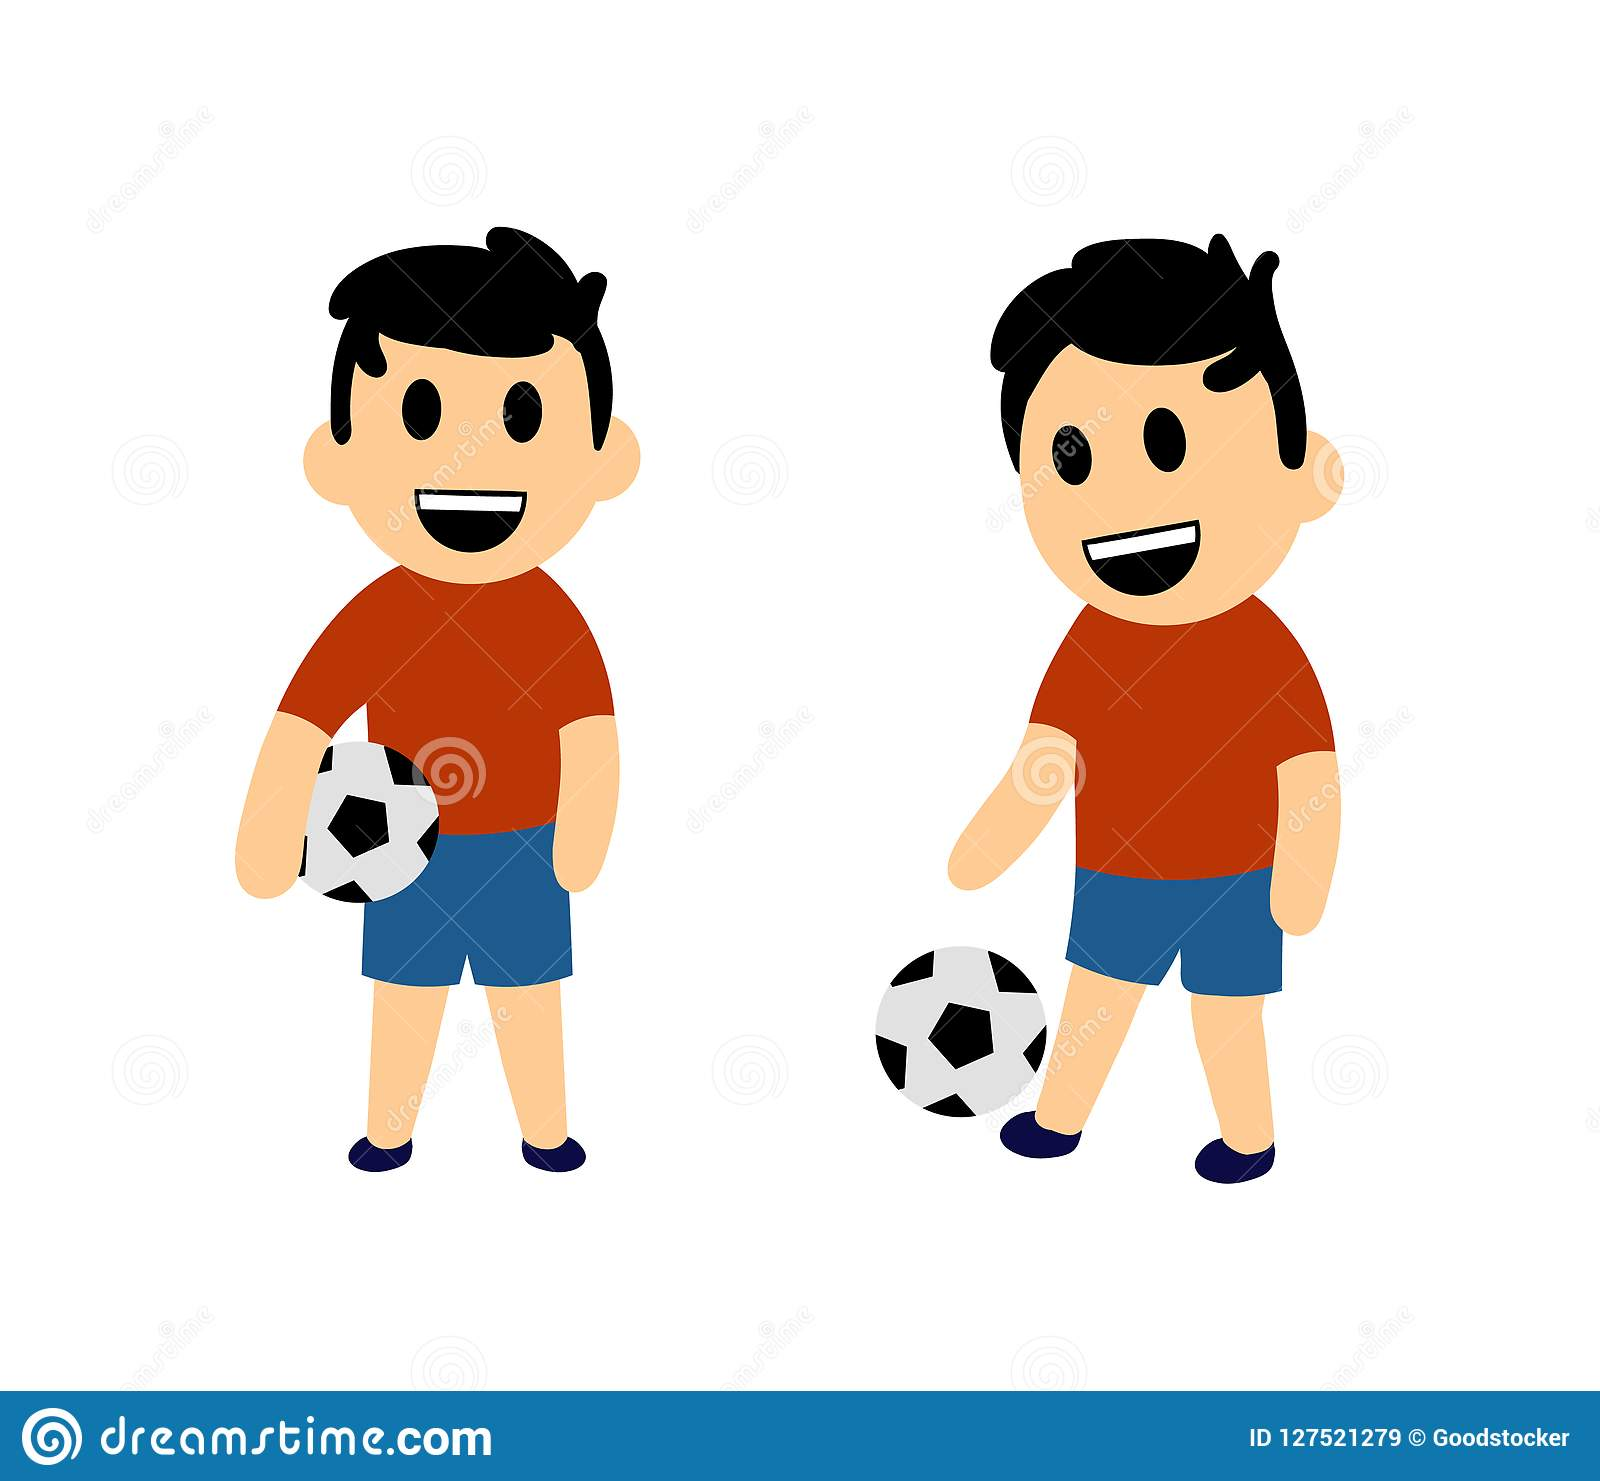 Funny Cartoon Images Of Boys funny cartoon boy playing football. set of two characters